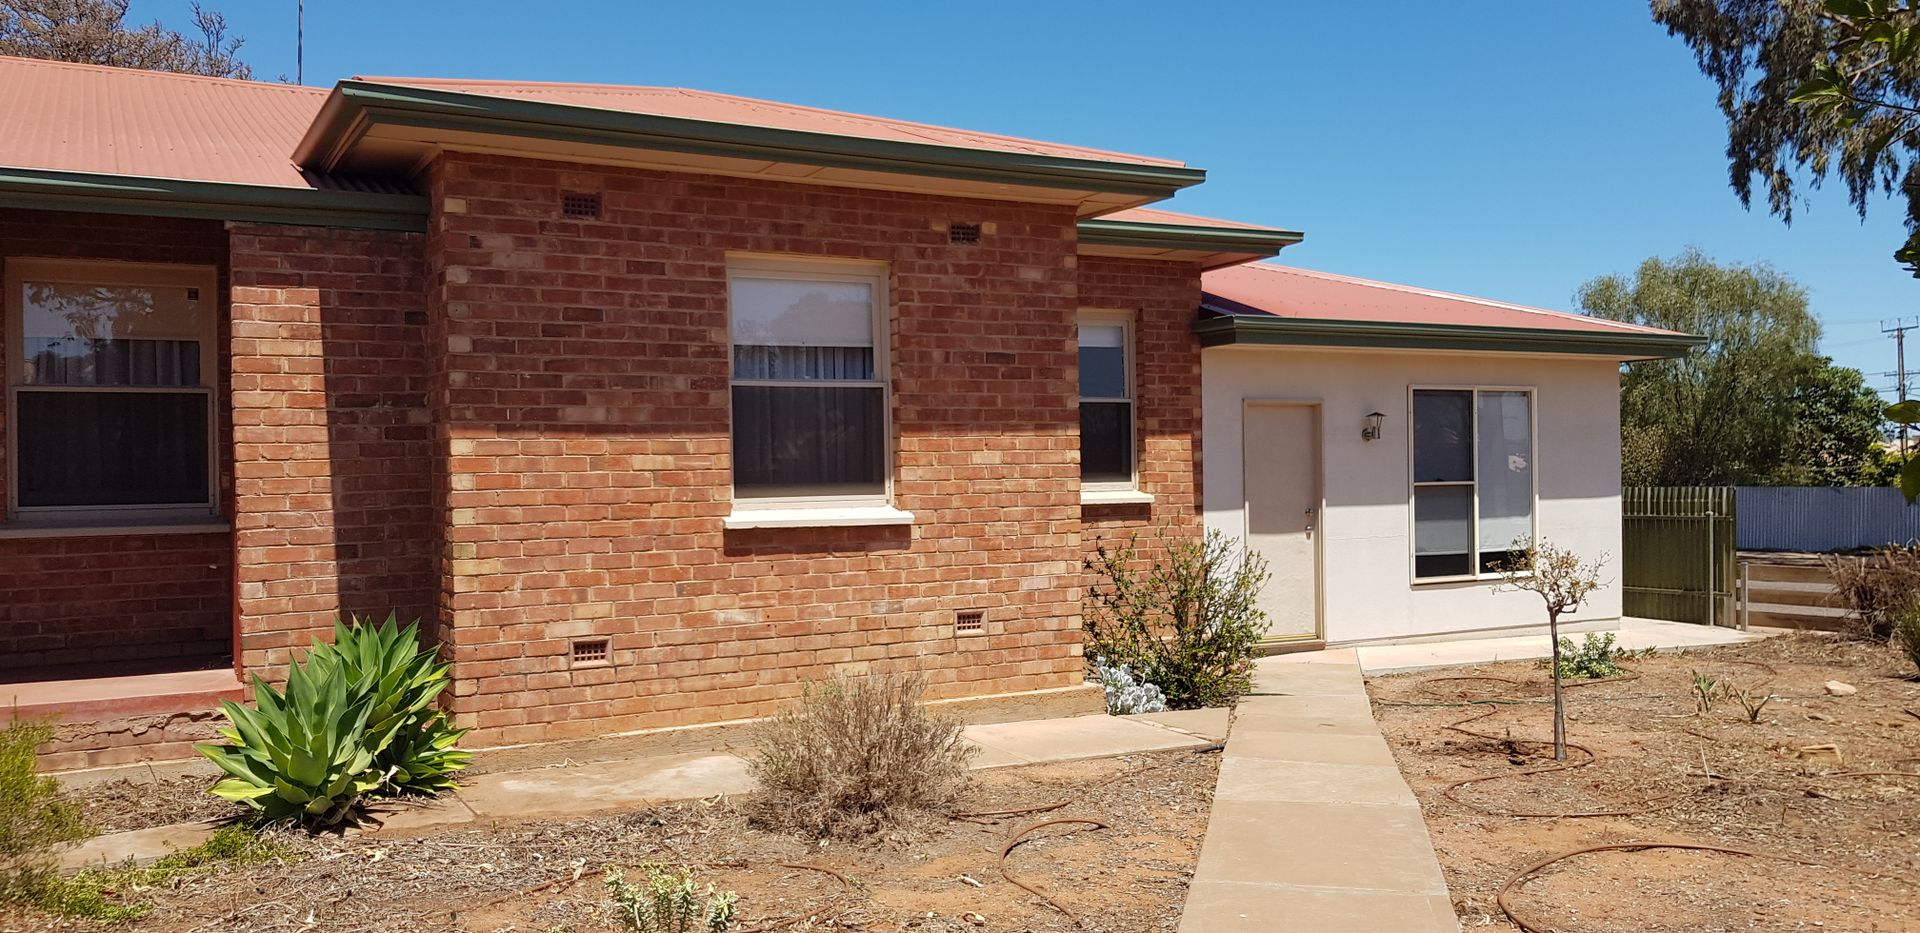 32 Nelligan  Street, Whyalla Norrie SA 5608, Image 0